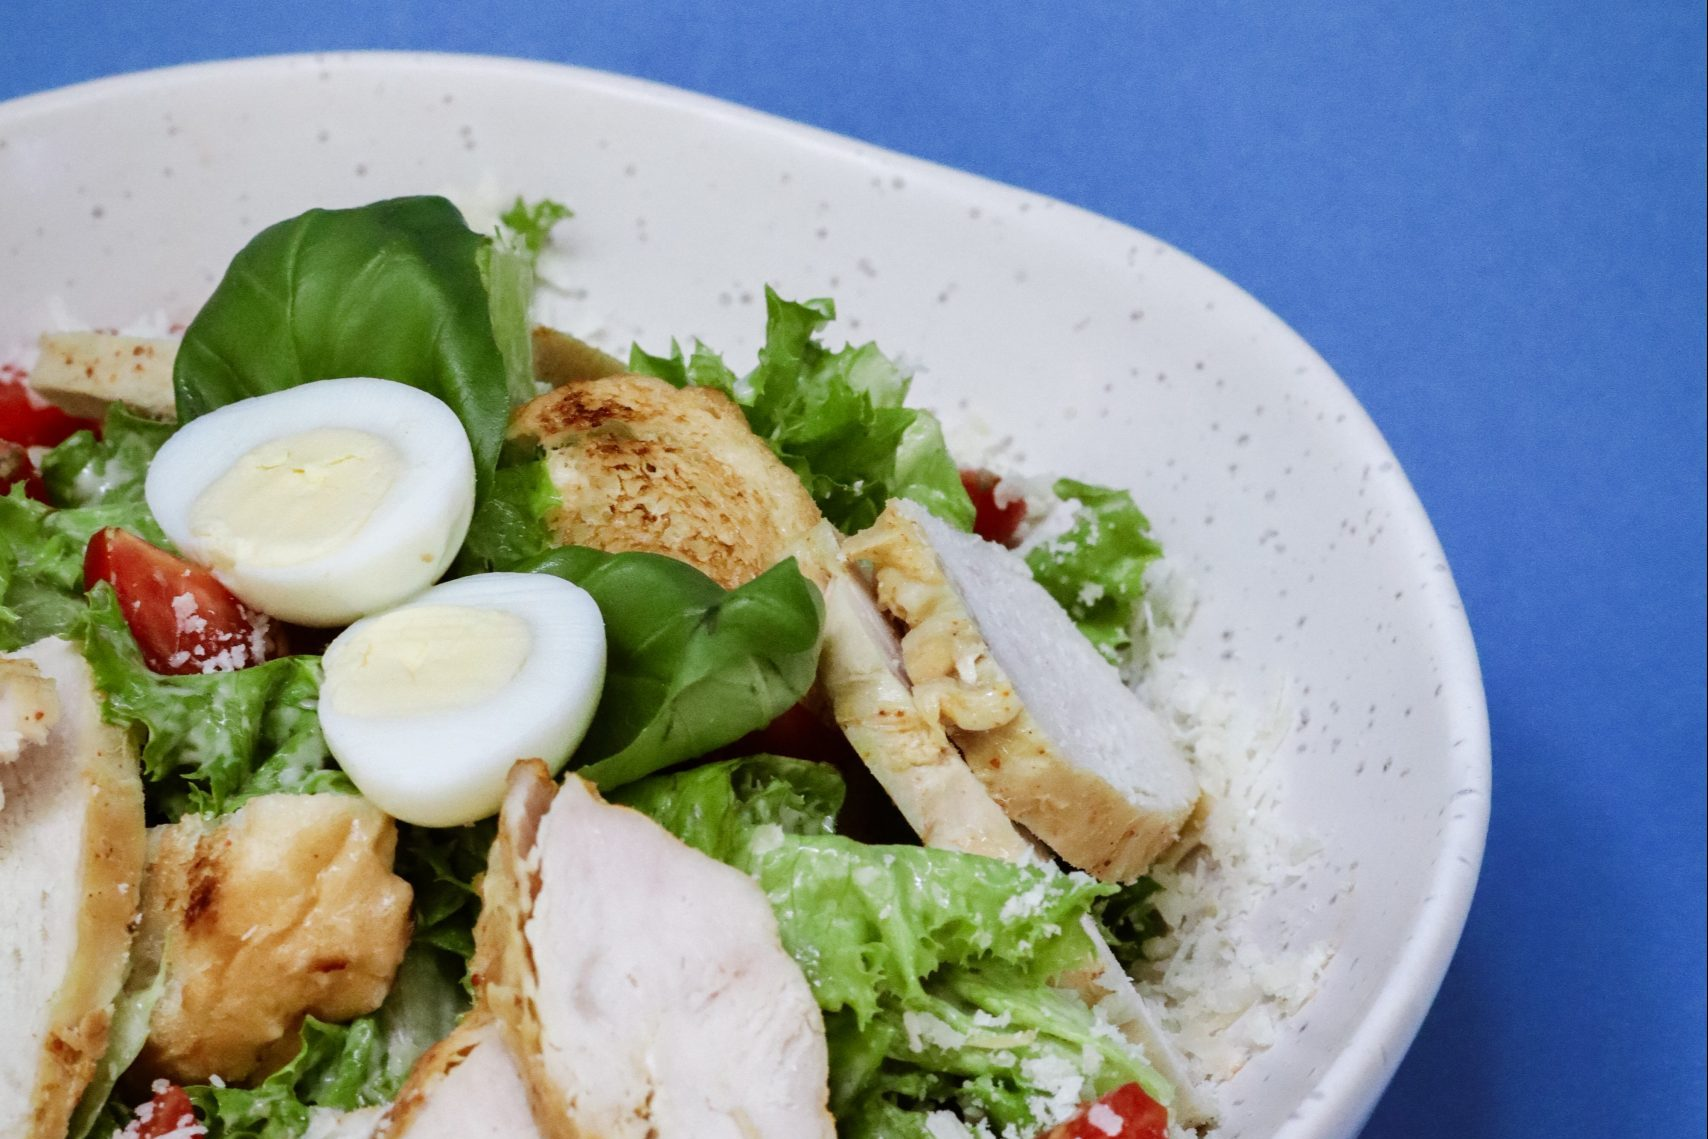 Leftover Easter eggs - salad with grilled chicken and hard boiled eggs